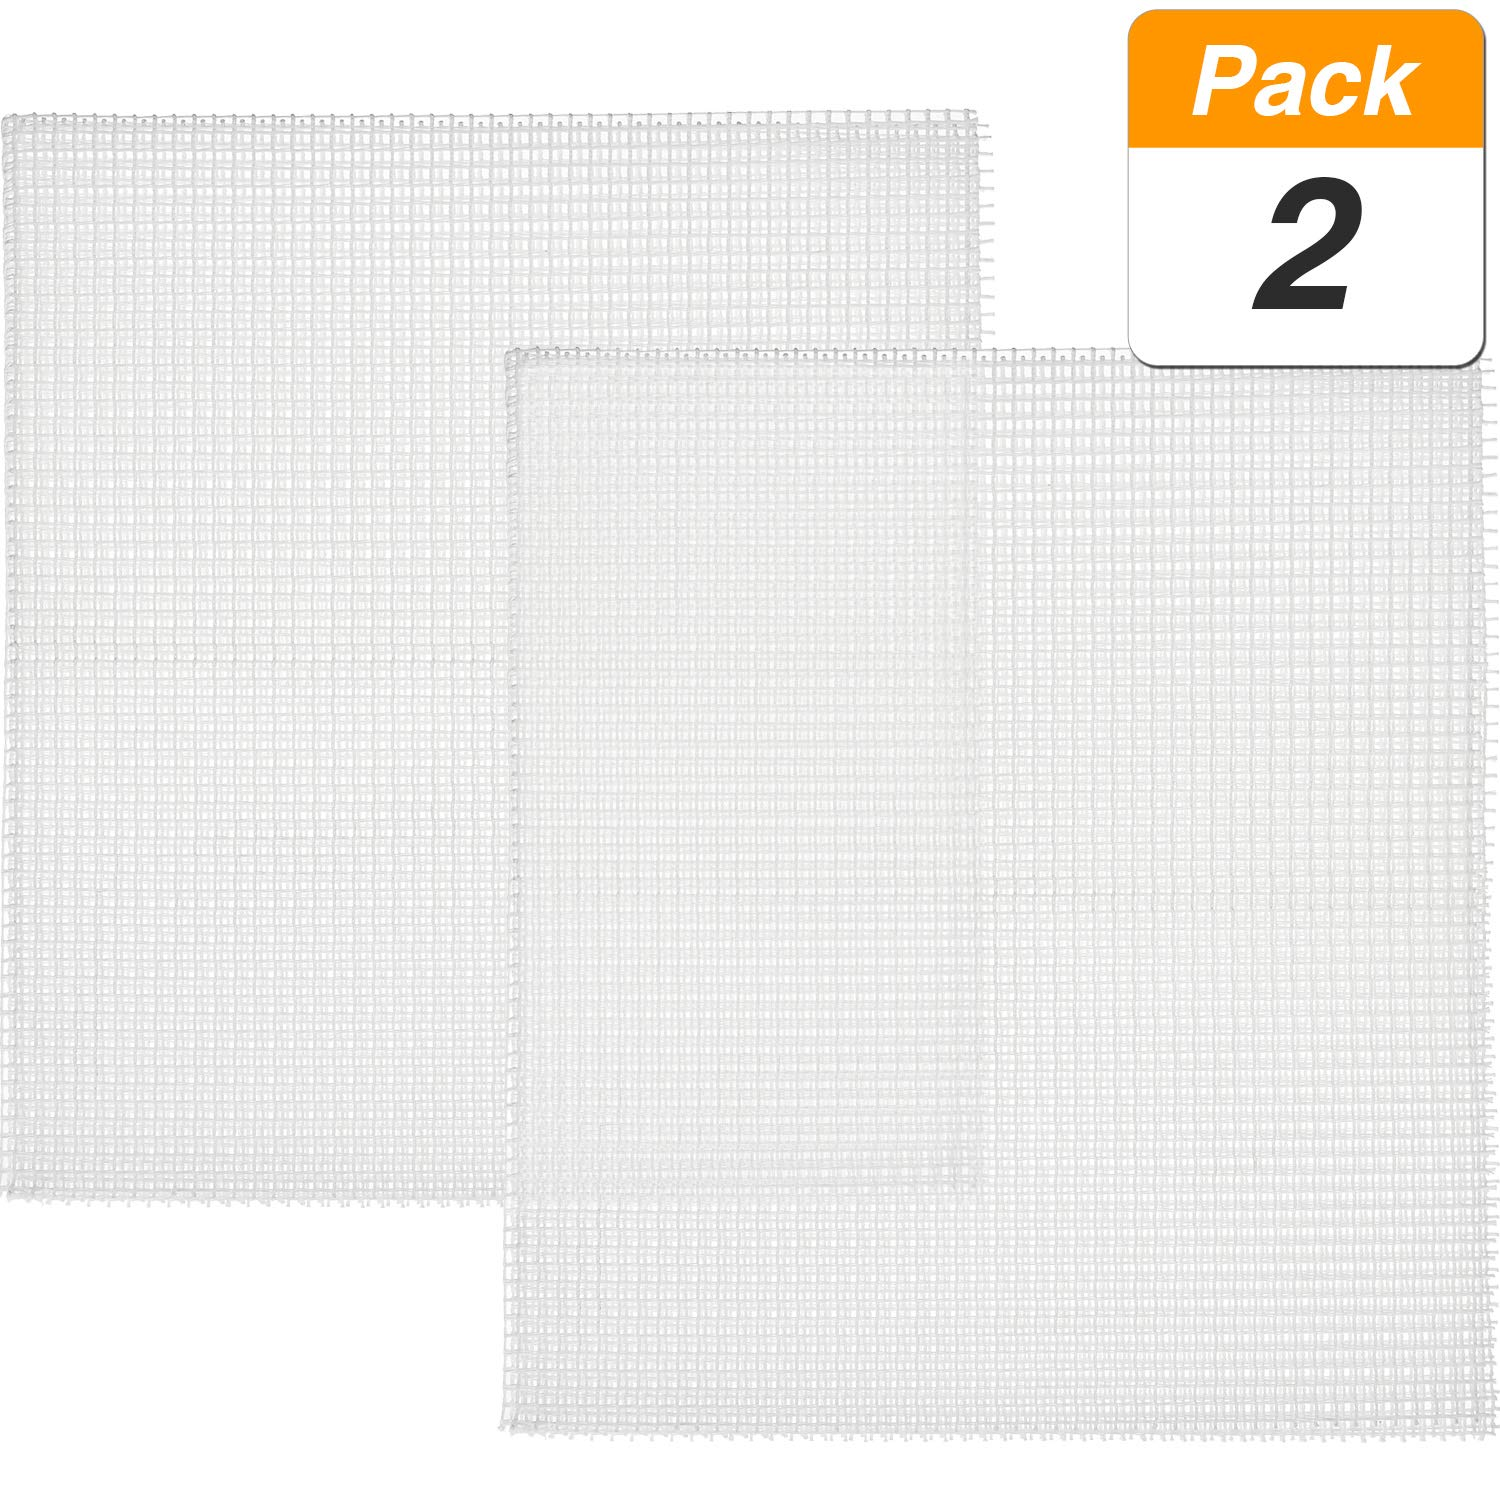 SATINIOR 2 Pieces Mesh Fabric Polyester Mesh for Wall Hanging Pillow Latch Hook Rug Craftwork Decoration, 30.3 x 23.6 inch